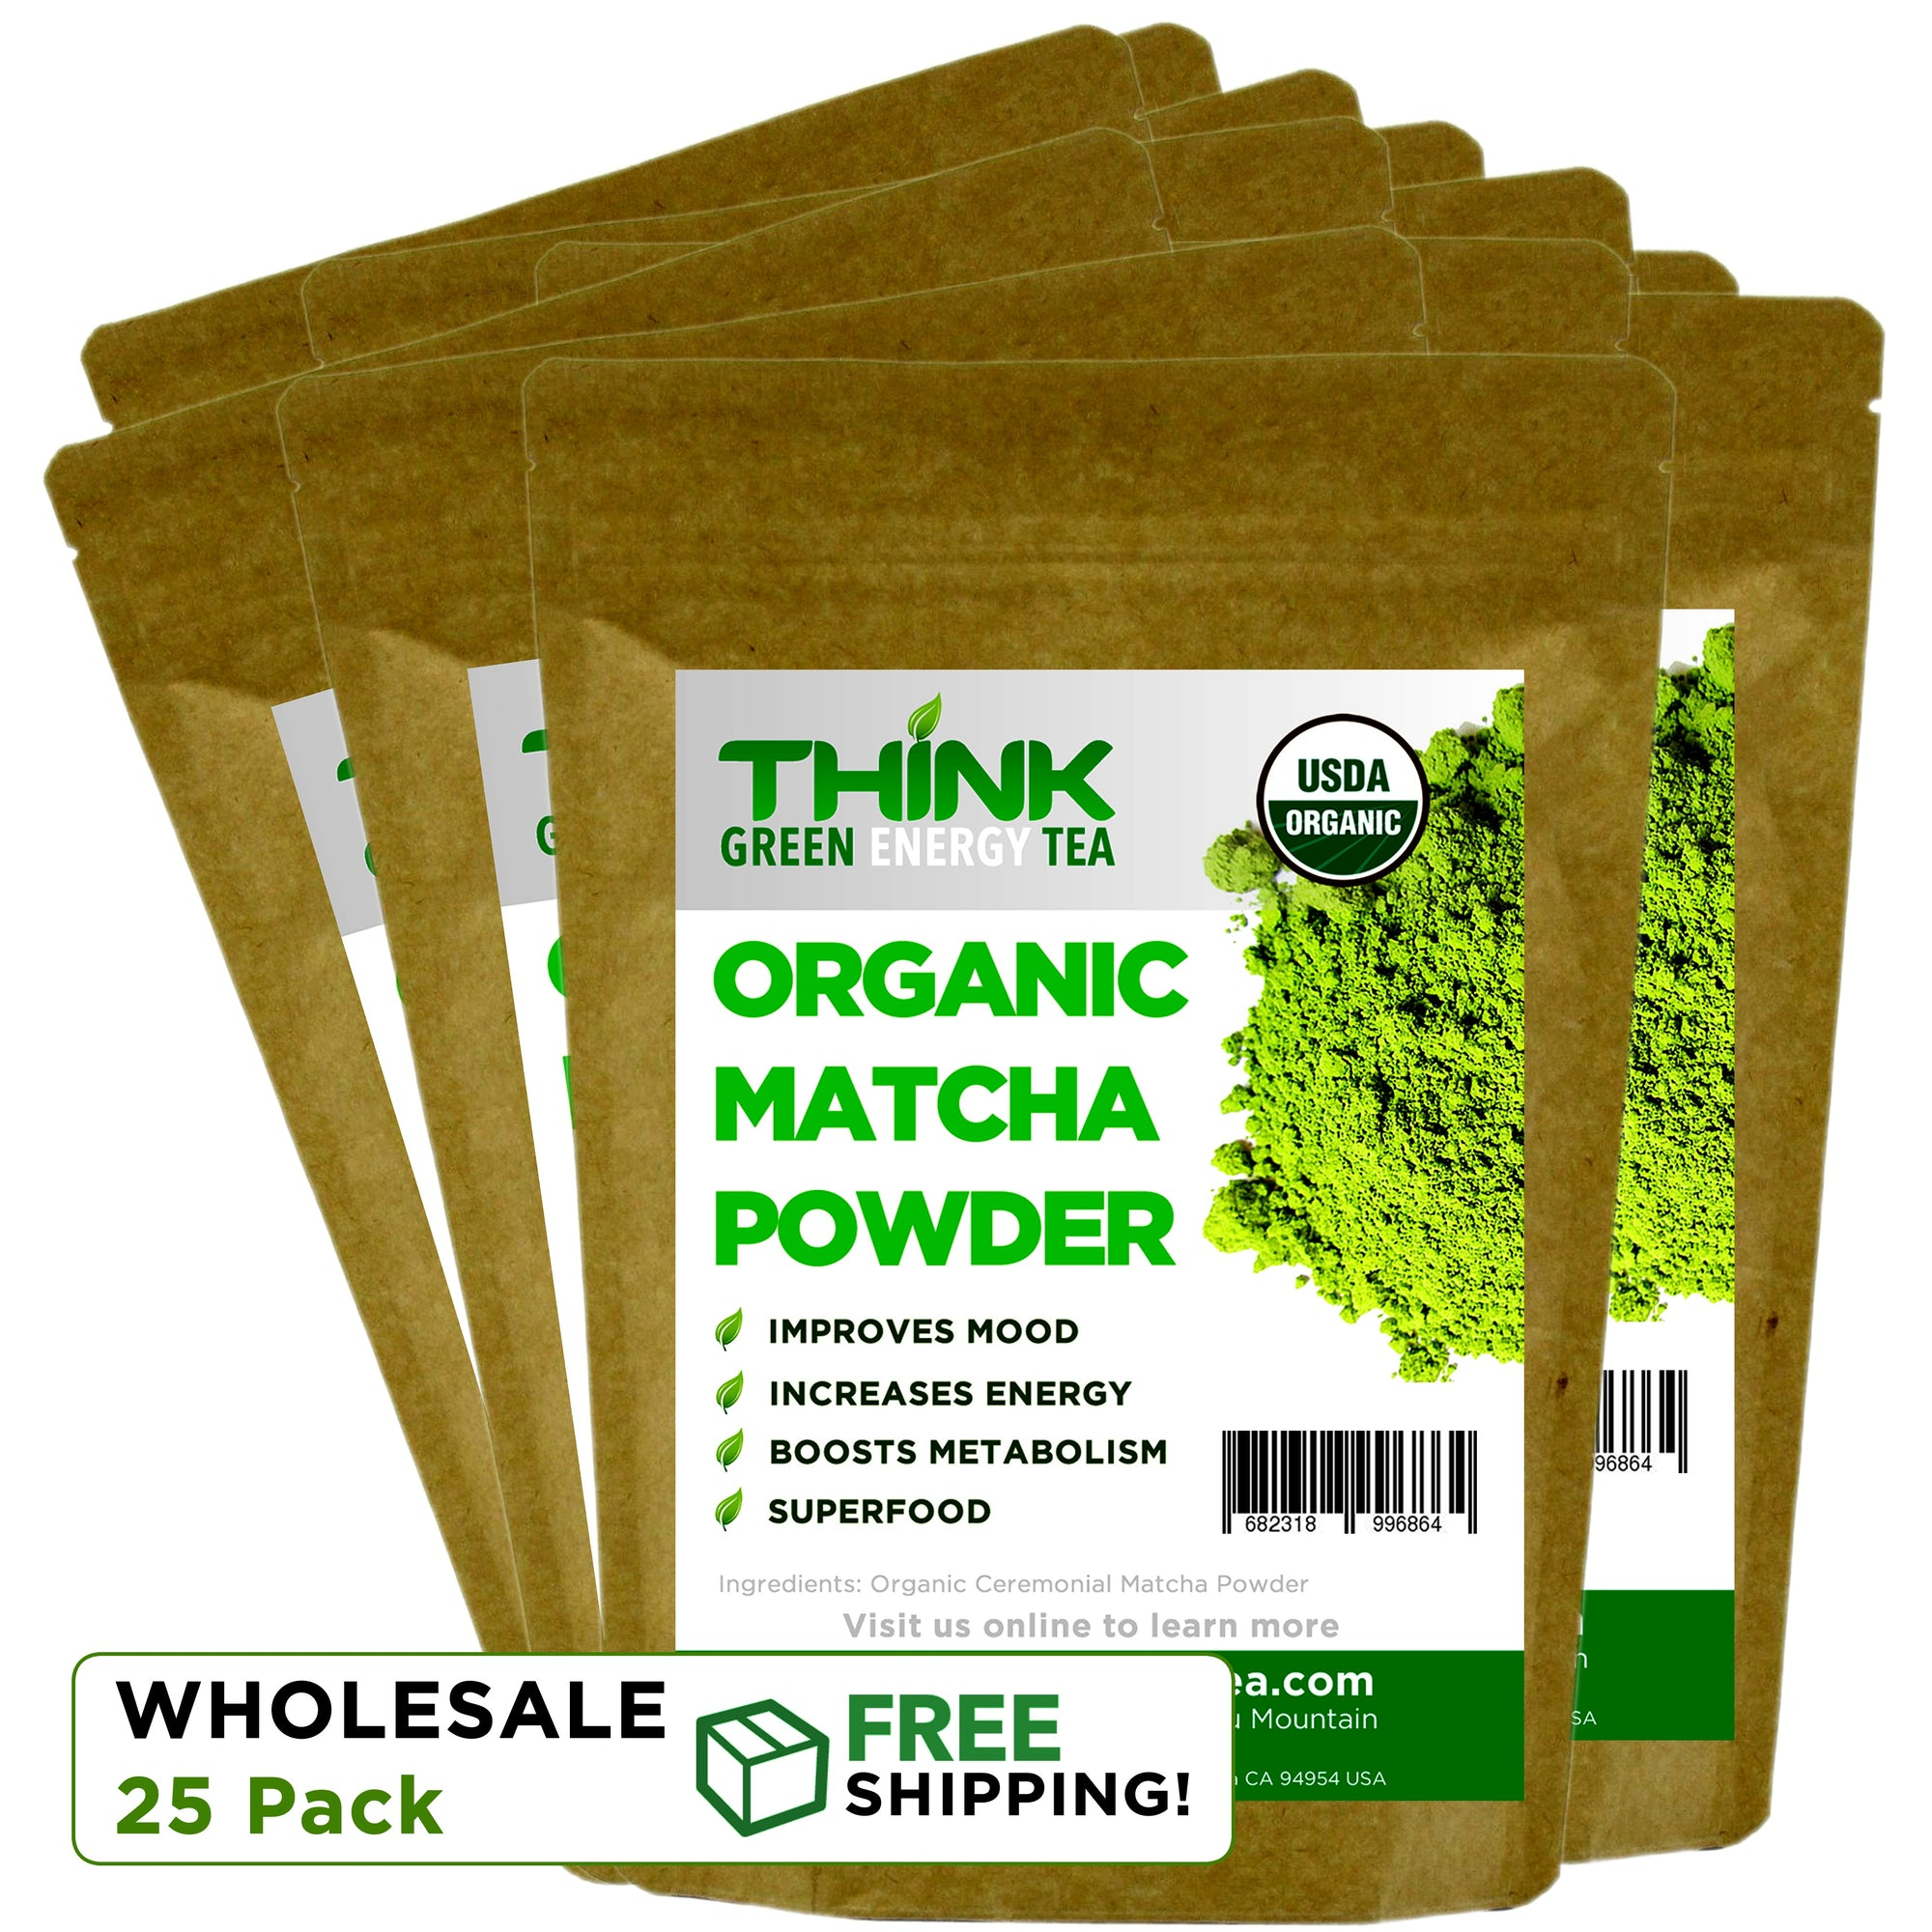 Wholesale: Think Green Energy Tea Powder 25 Packs for Resale (Individual packs are 25 servings) - Snazzy Gourmet